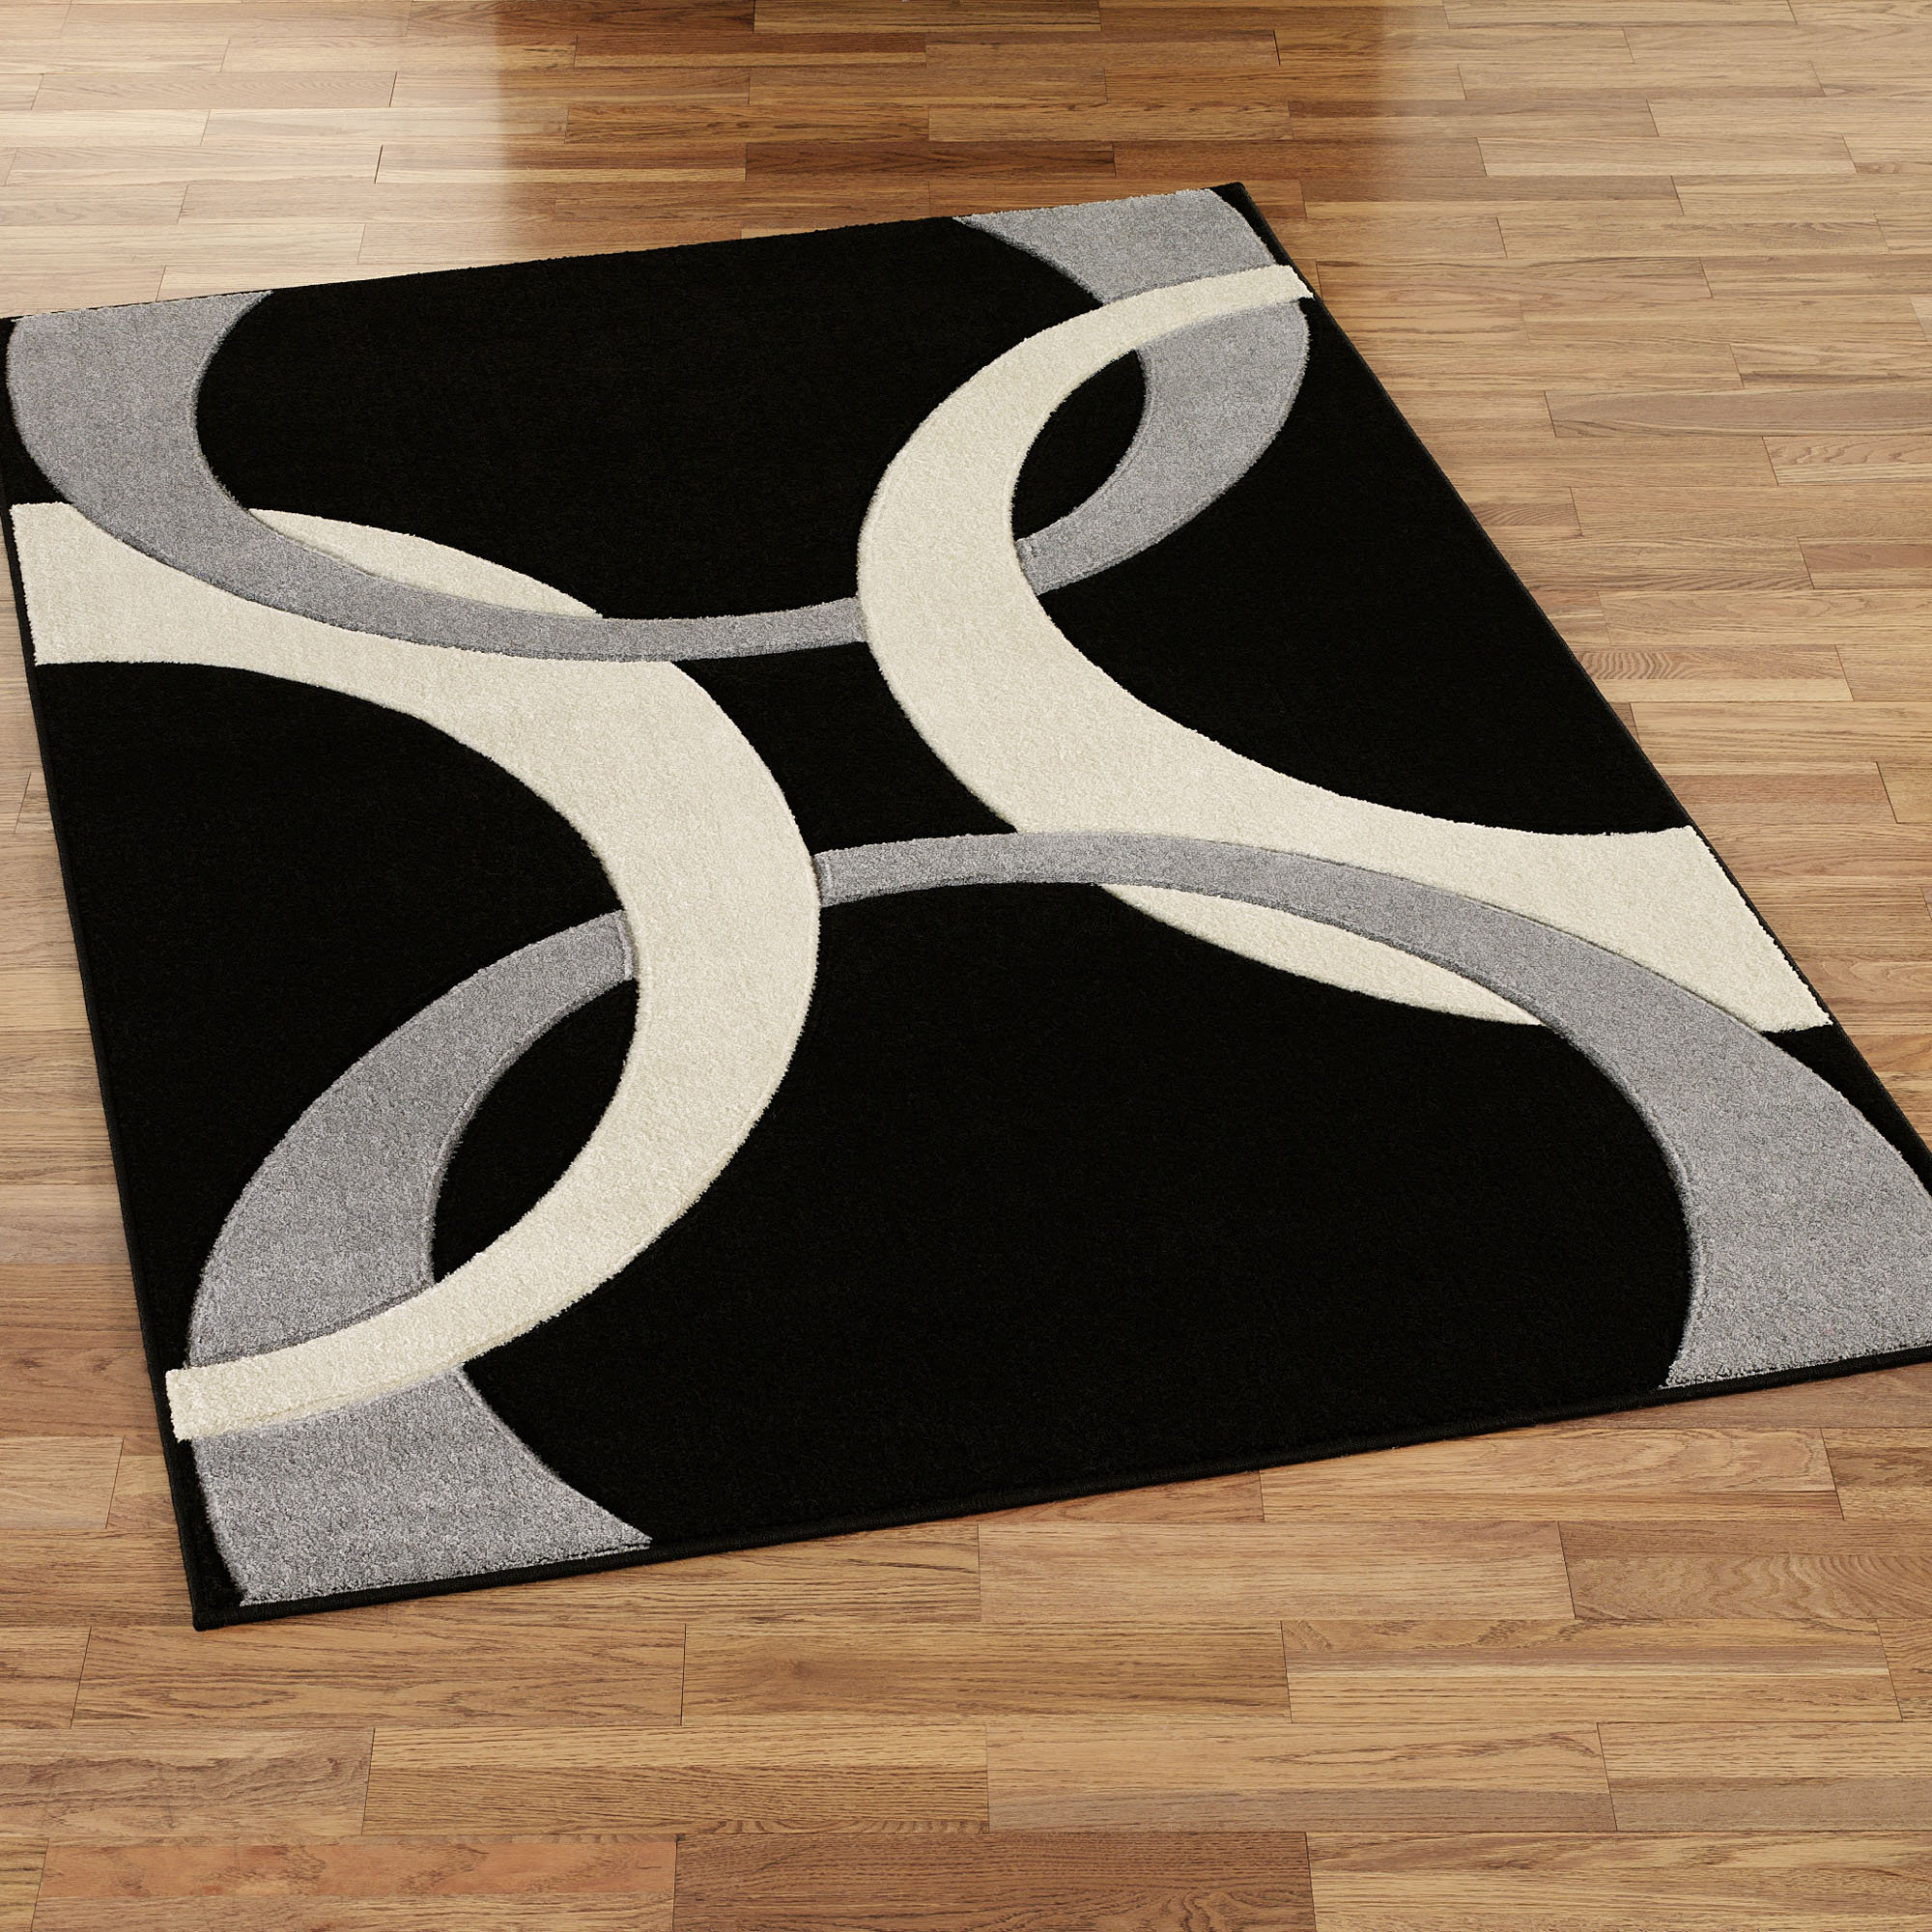 Contemporary affordable rugs outdoor rugs for patios cheap outdoor rugs rugs costco cheap outdoor rug PHWDAYY